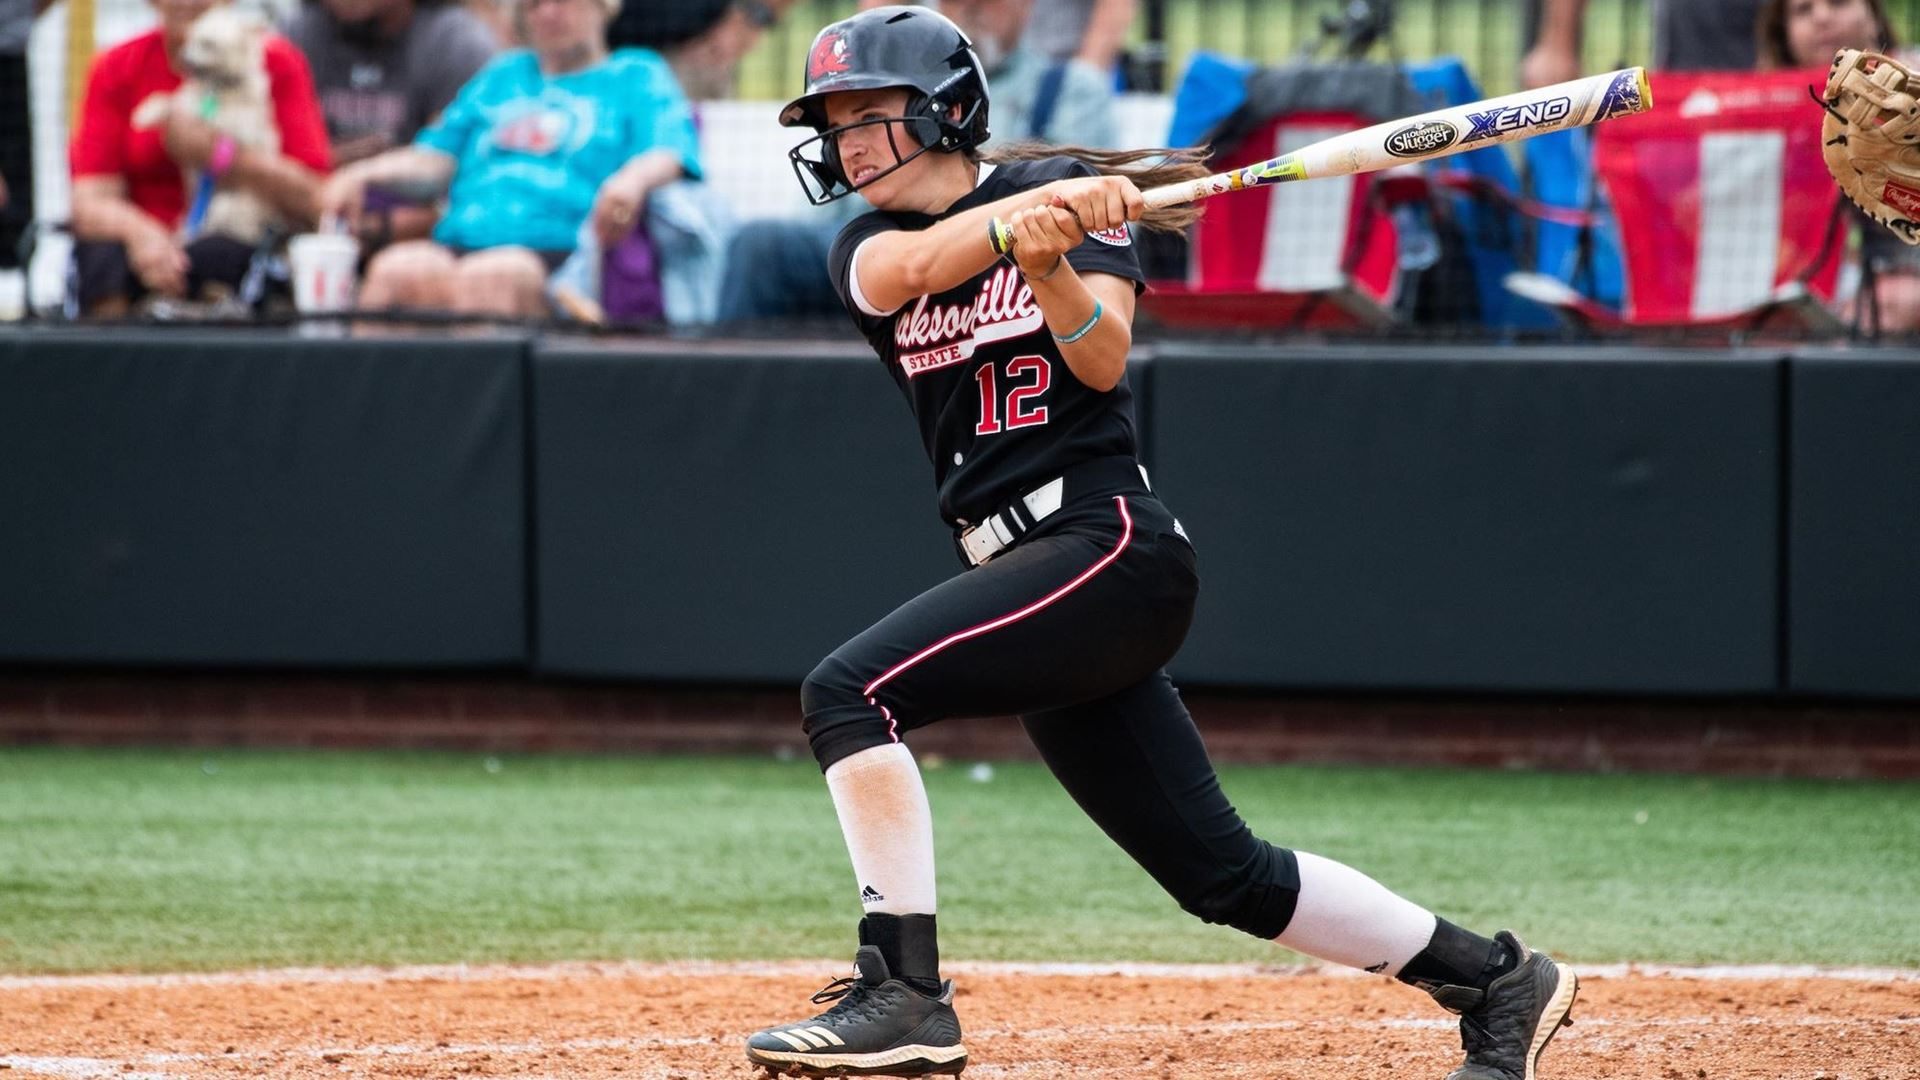 Karsen Mosely up to bat at the Mardi Gras Mambo Tournament where she totaled five hits for the weekend. (Courtesy of JSU)